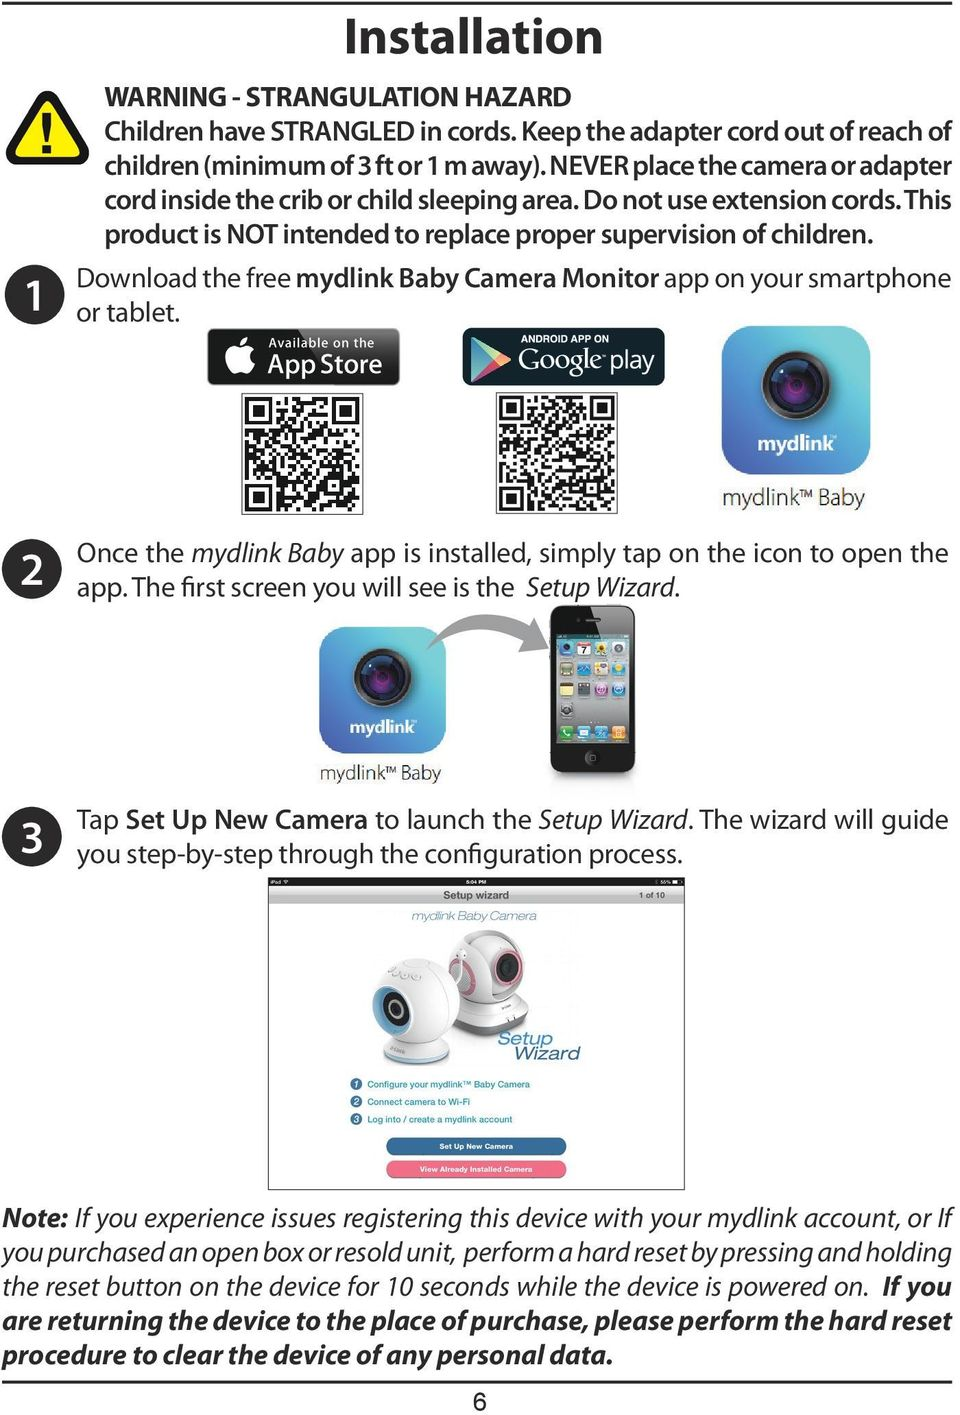 Download the free mydlink Baby Camera Monitor app on your smartphone or tablet. 2 Once the mydlink Baby app is installed, simply tap on the icon to open the app.